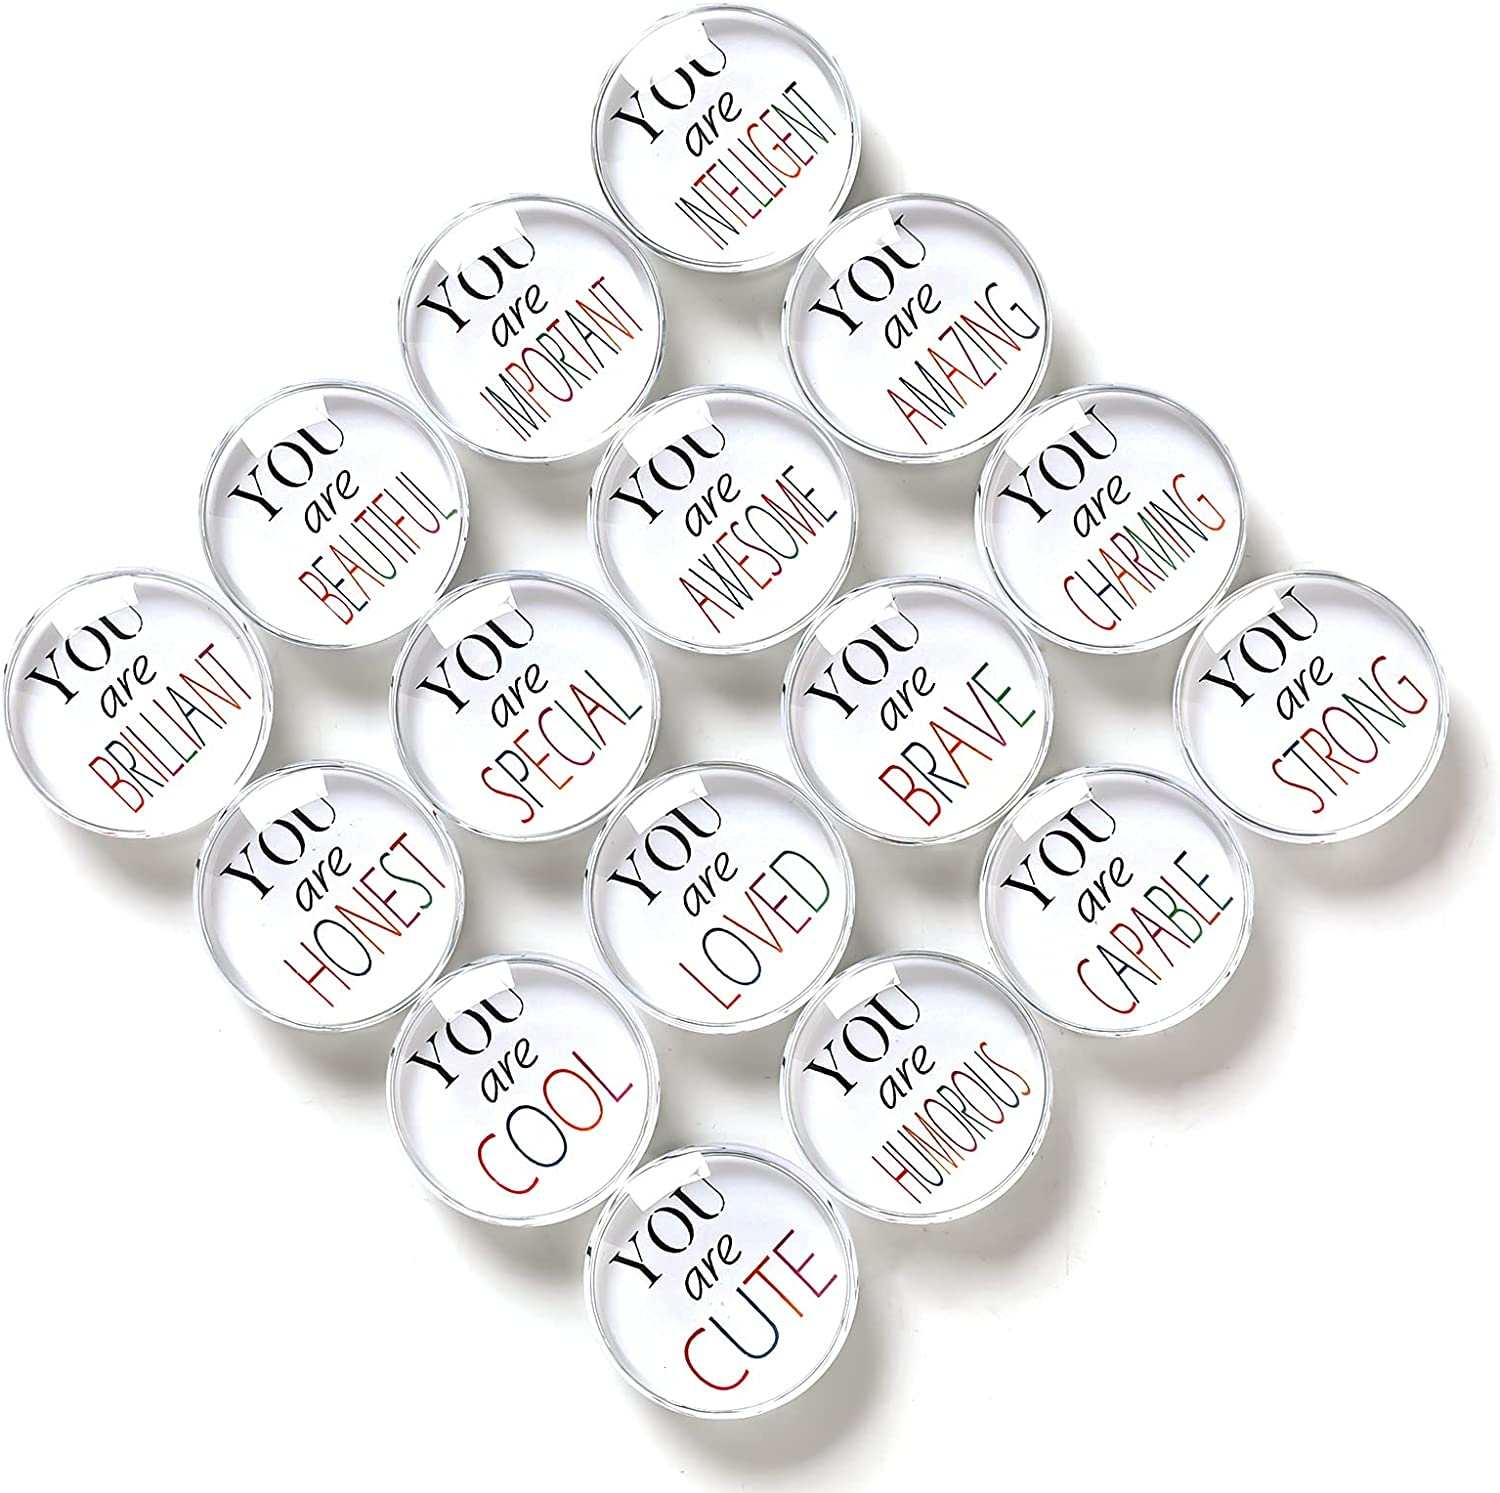 16pcs Refrigerator Magnets, Crystal Glass Active Letter Pattern Fridge Magnets for Home Office Cabinets, Whiteboards, Photos, Beautiful Decorative Magnets Gift